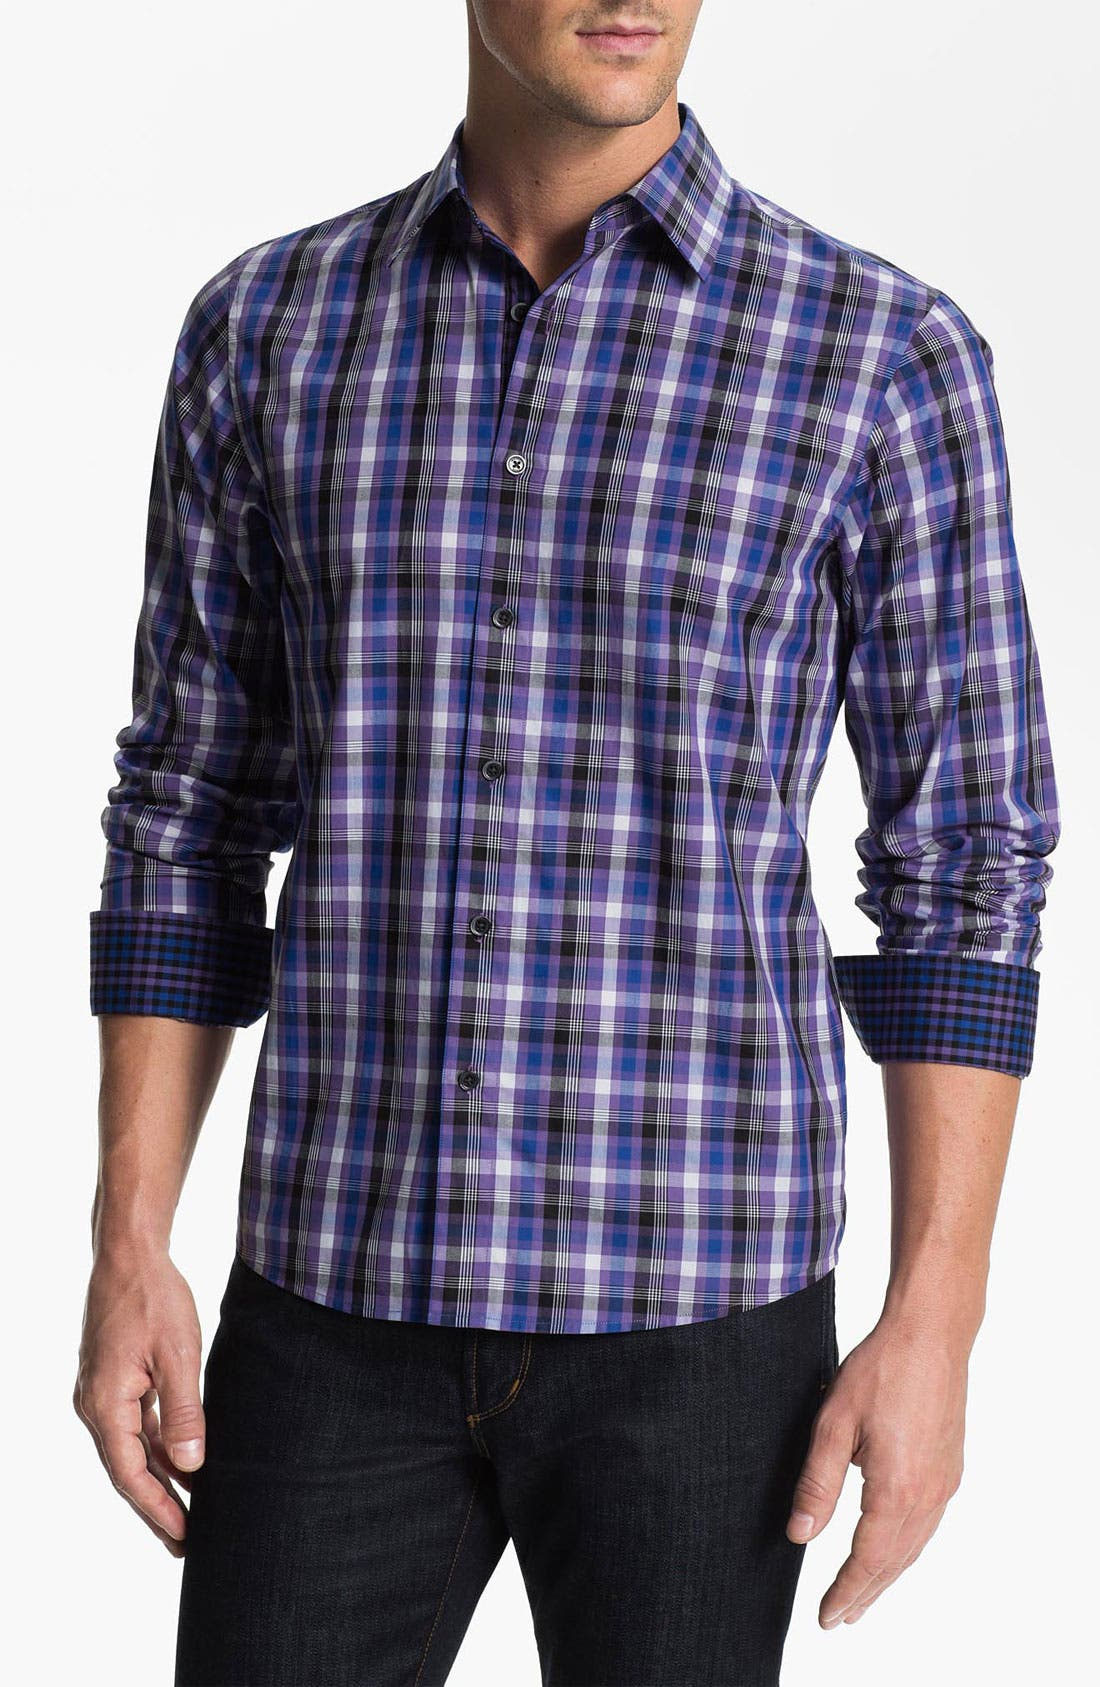 Alternate Image 1 Selected - Michael Kors 'Pace Check' Sport Shirt